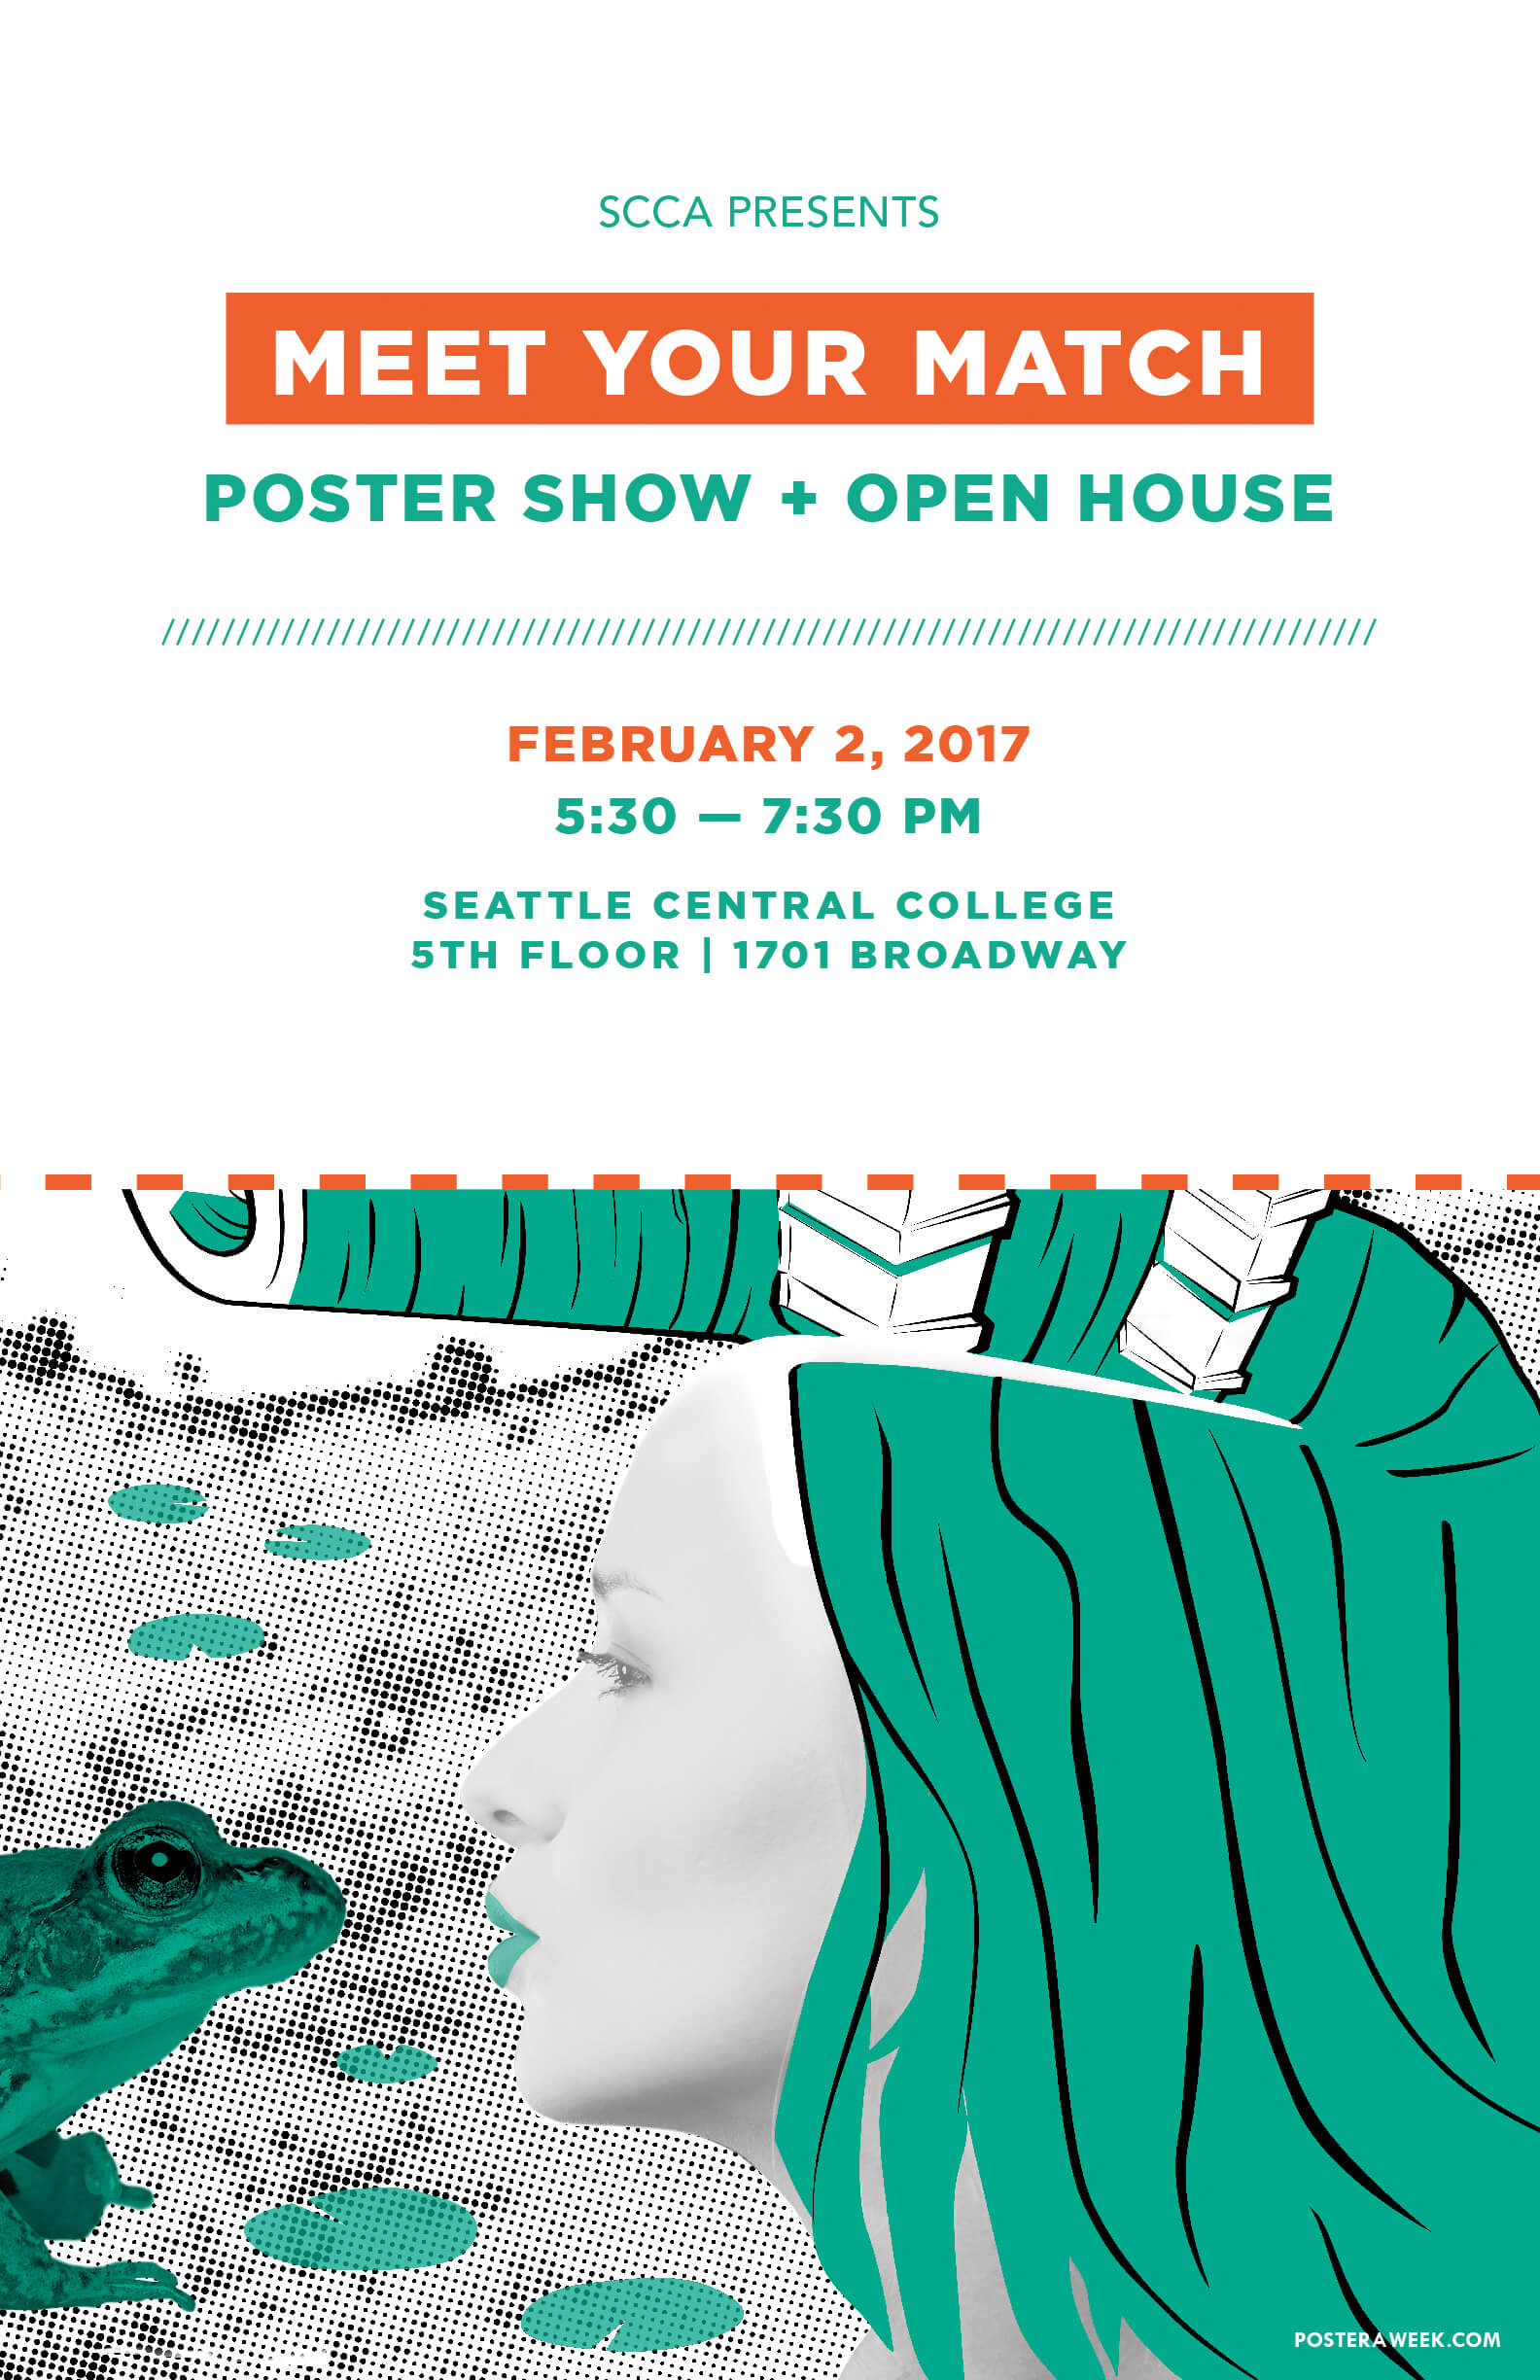 Poster a Week Free Posters Online - This Week: SCCA Meet Your Match Poster